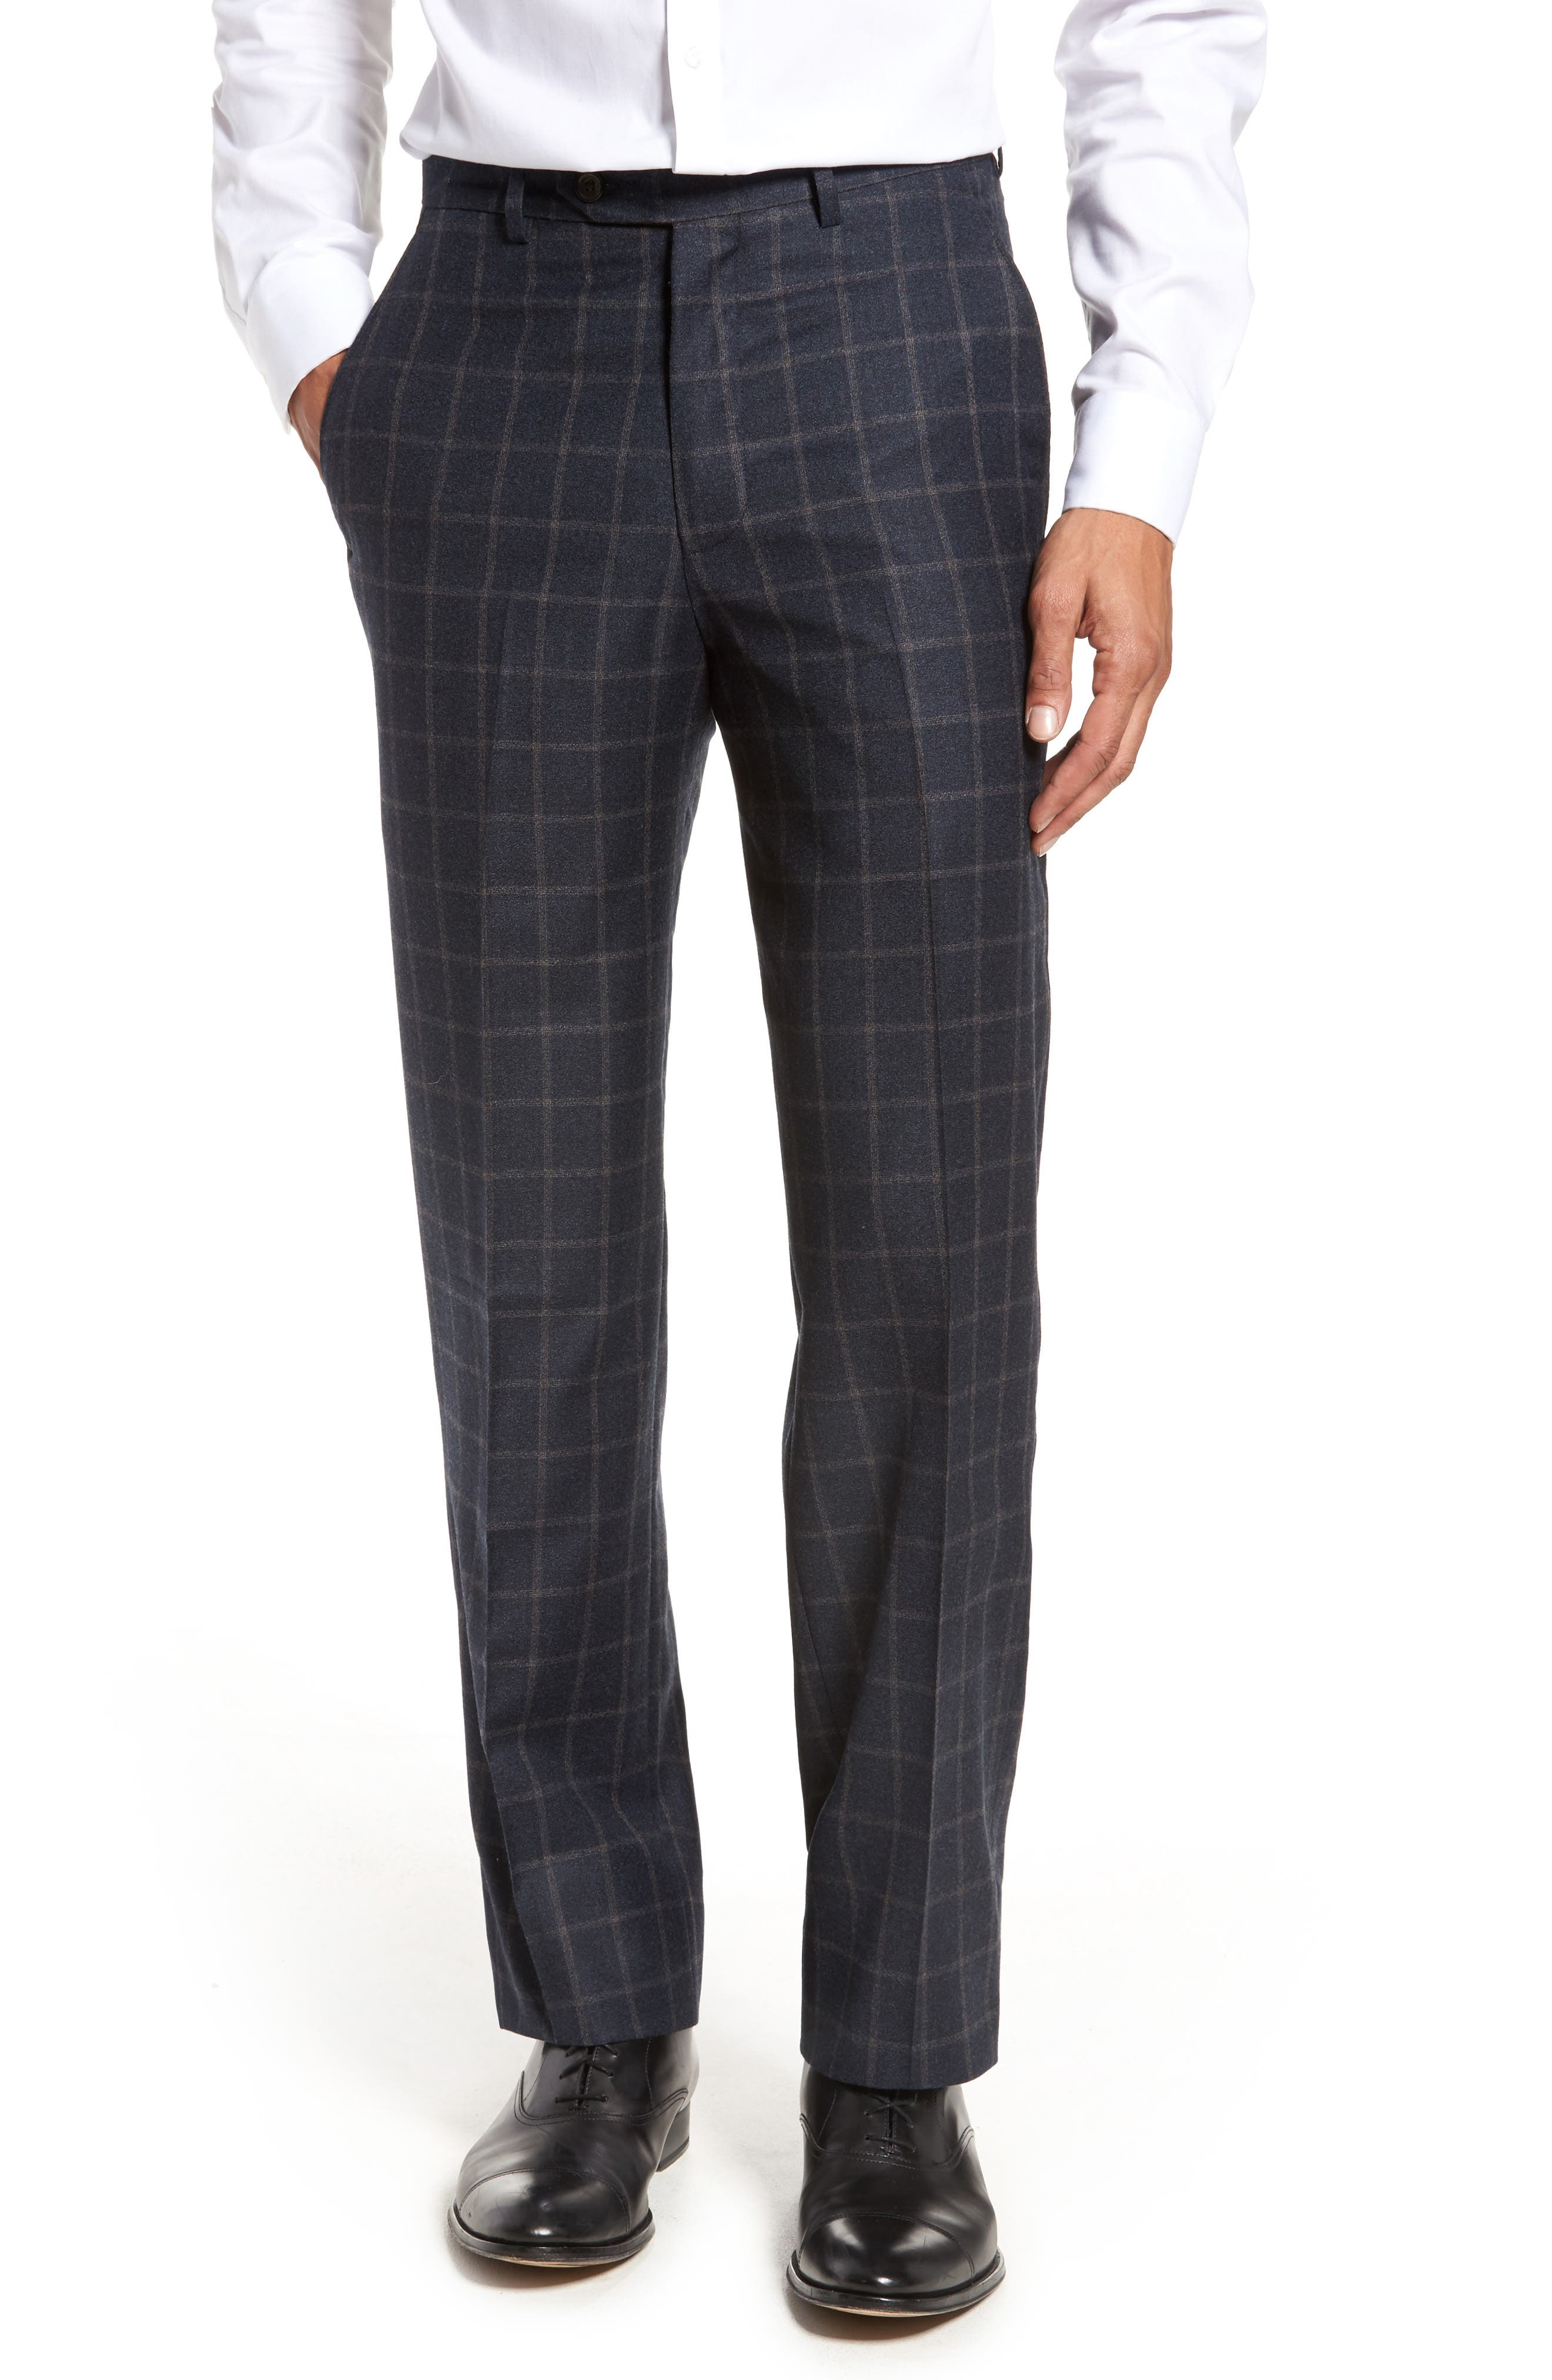 Charming windowpane checks detail handsome trousers crafted from super 130s worsted Italian wool. Style Name: Berle Flat Front Windowpane Wool Trousers. Style Number: 5509300. Available in stores.